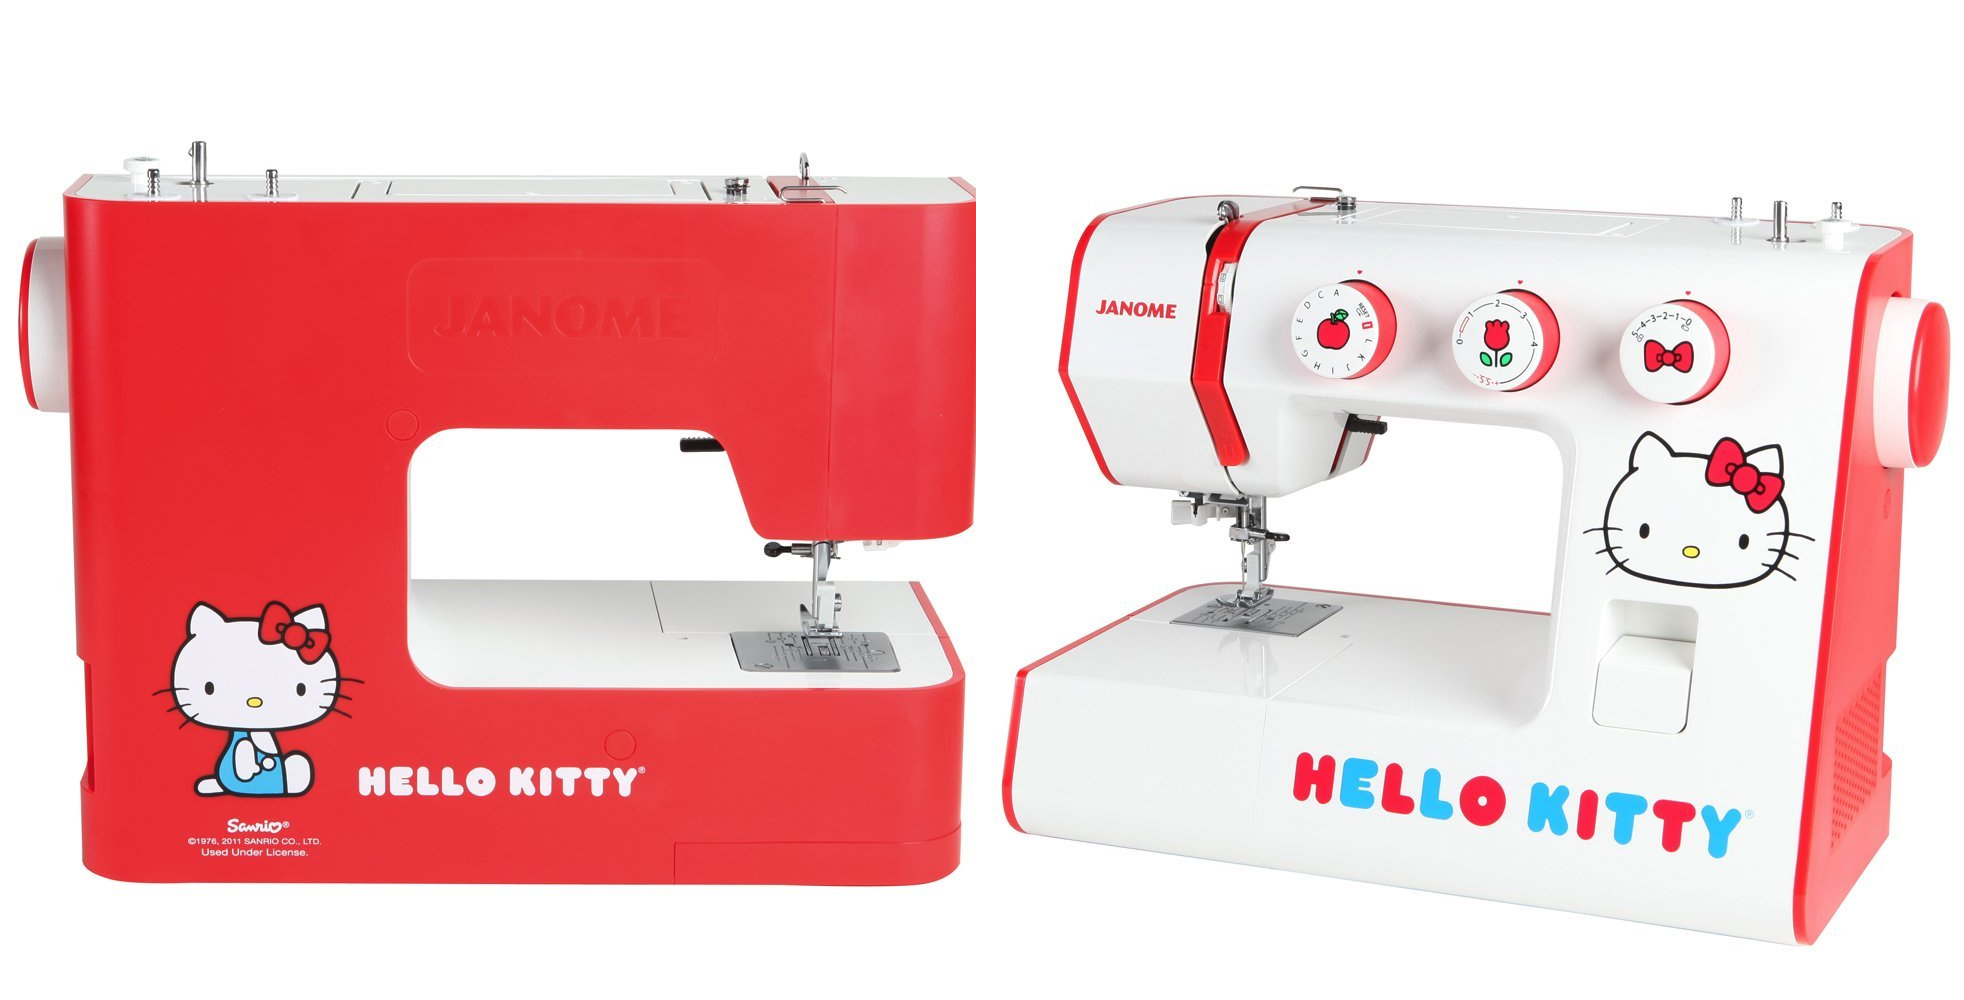 Hello Kitty Sewing Machine gift